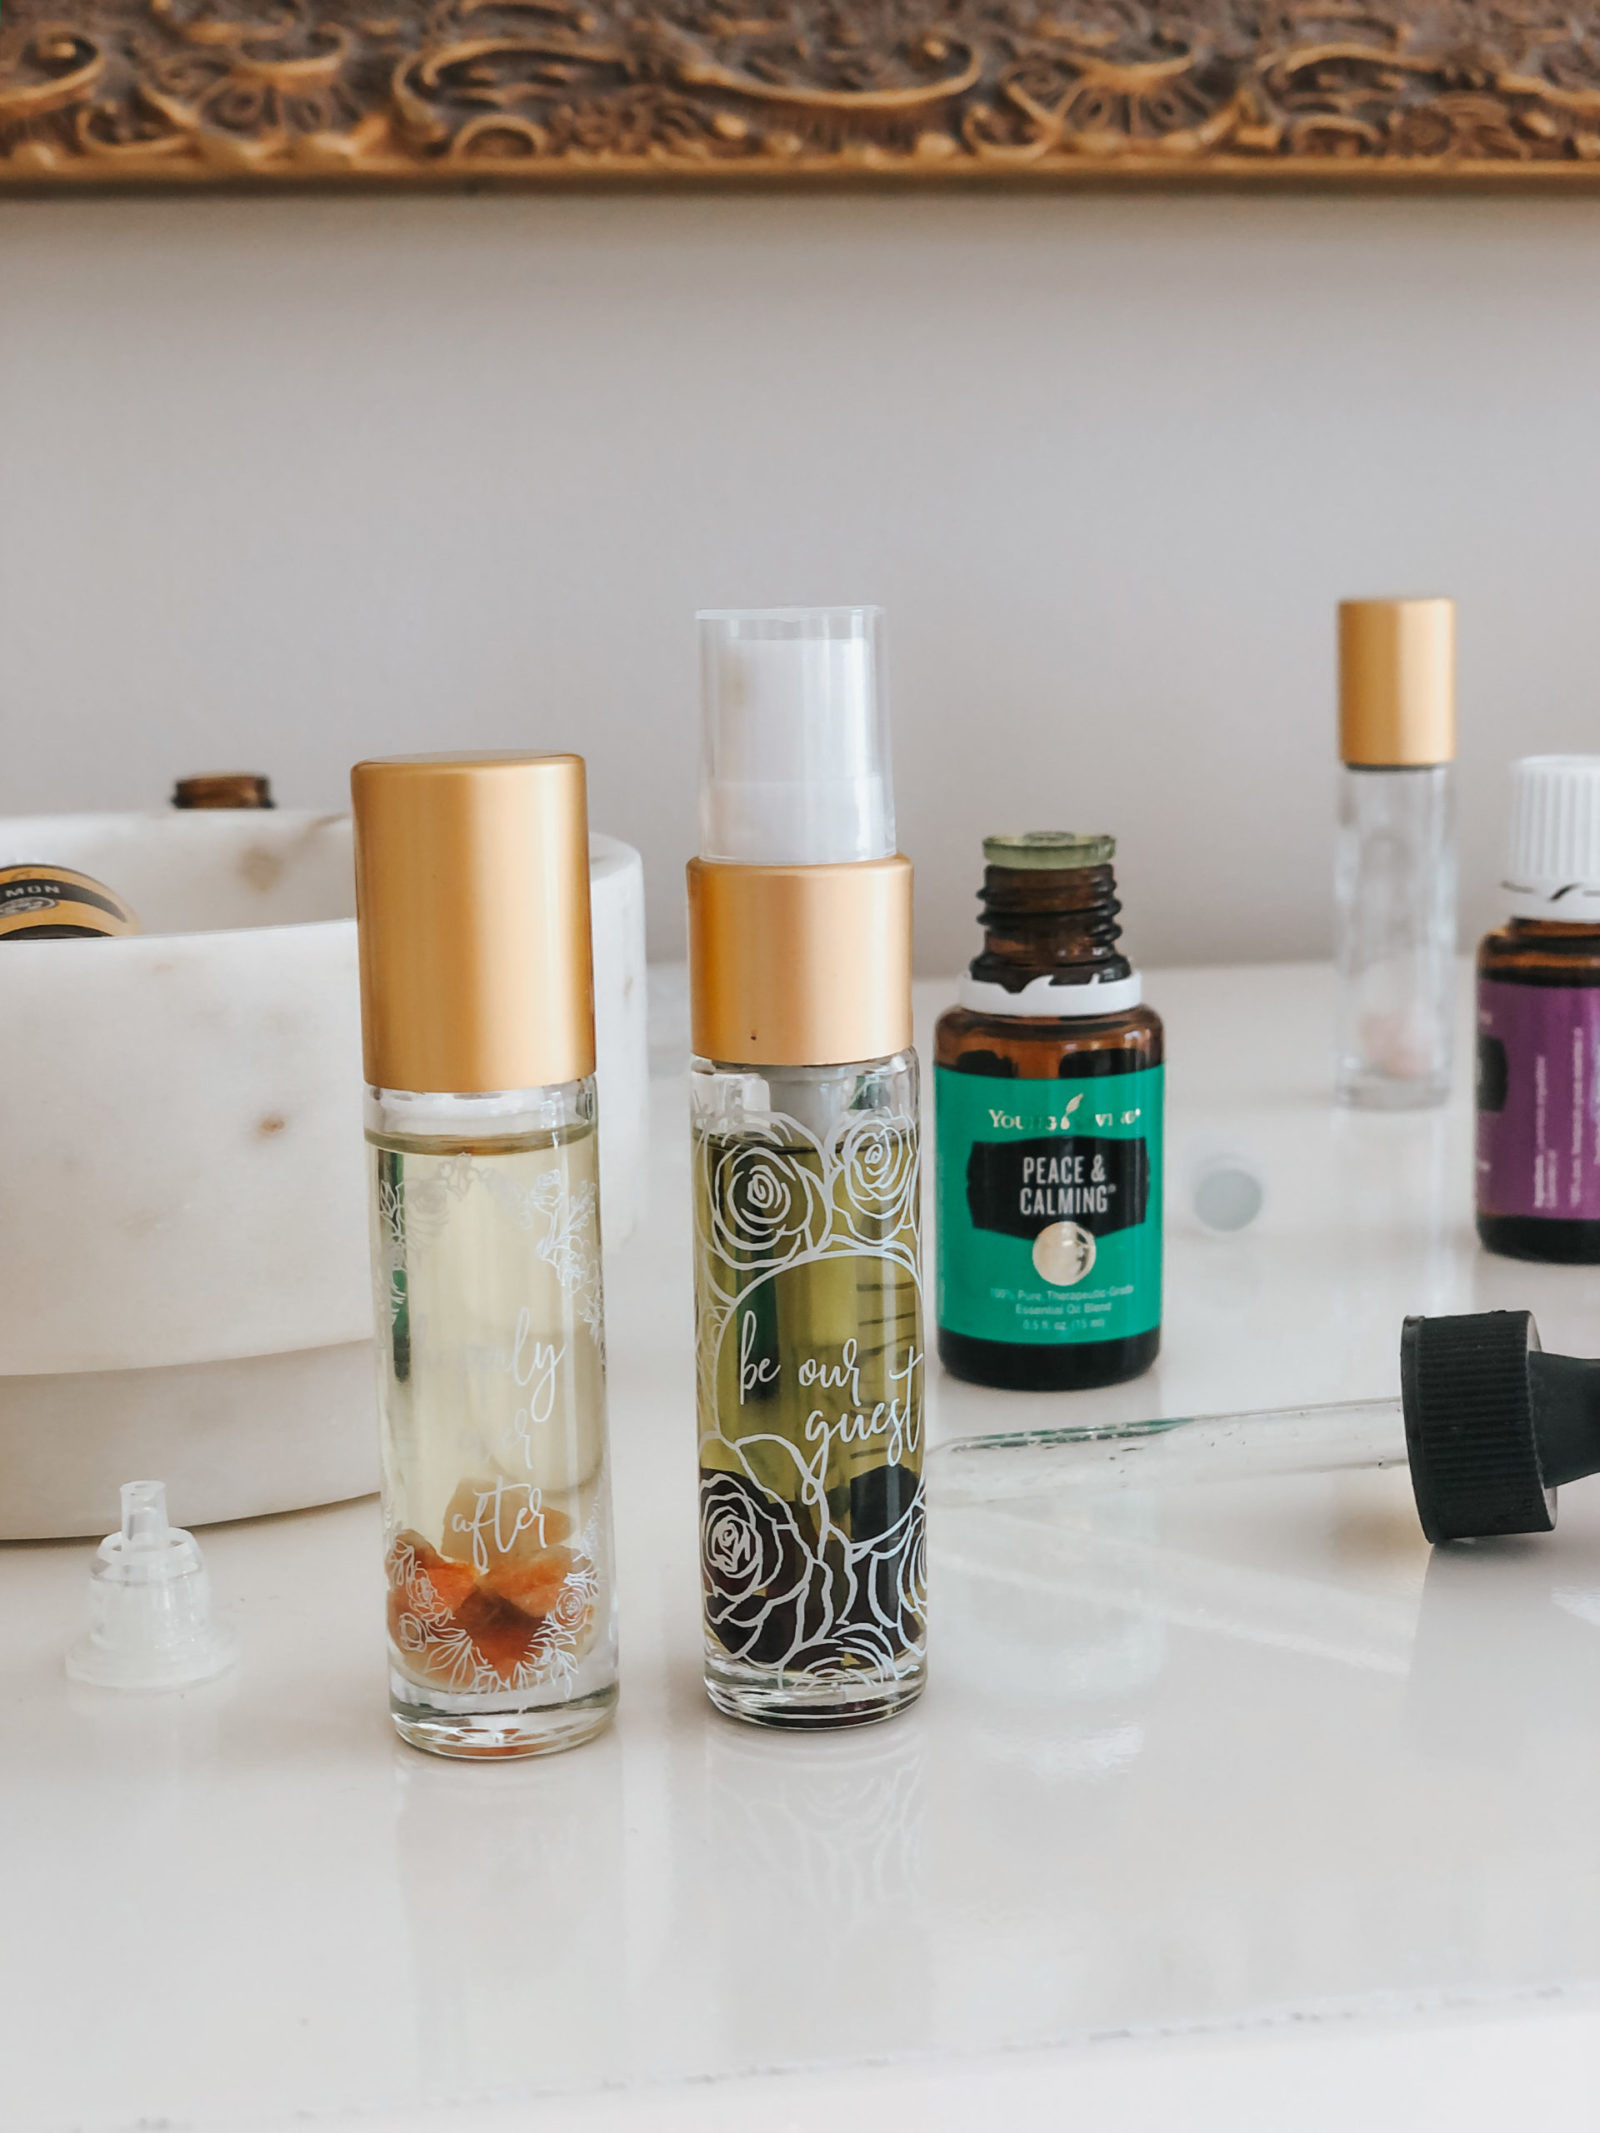 peace and calming young living essential oil blend in whimsy + wellness fairytale roller spray bottle